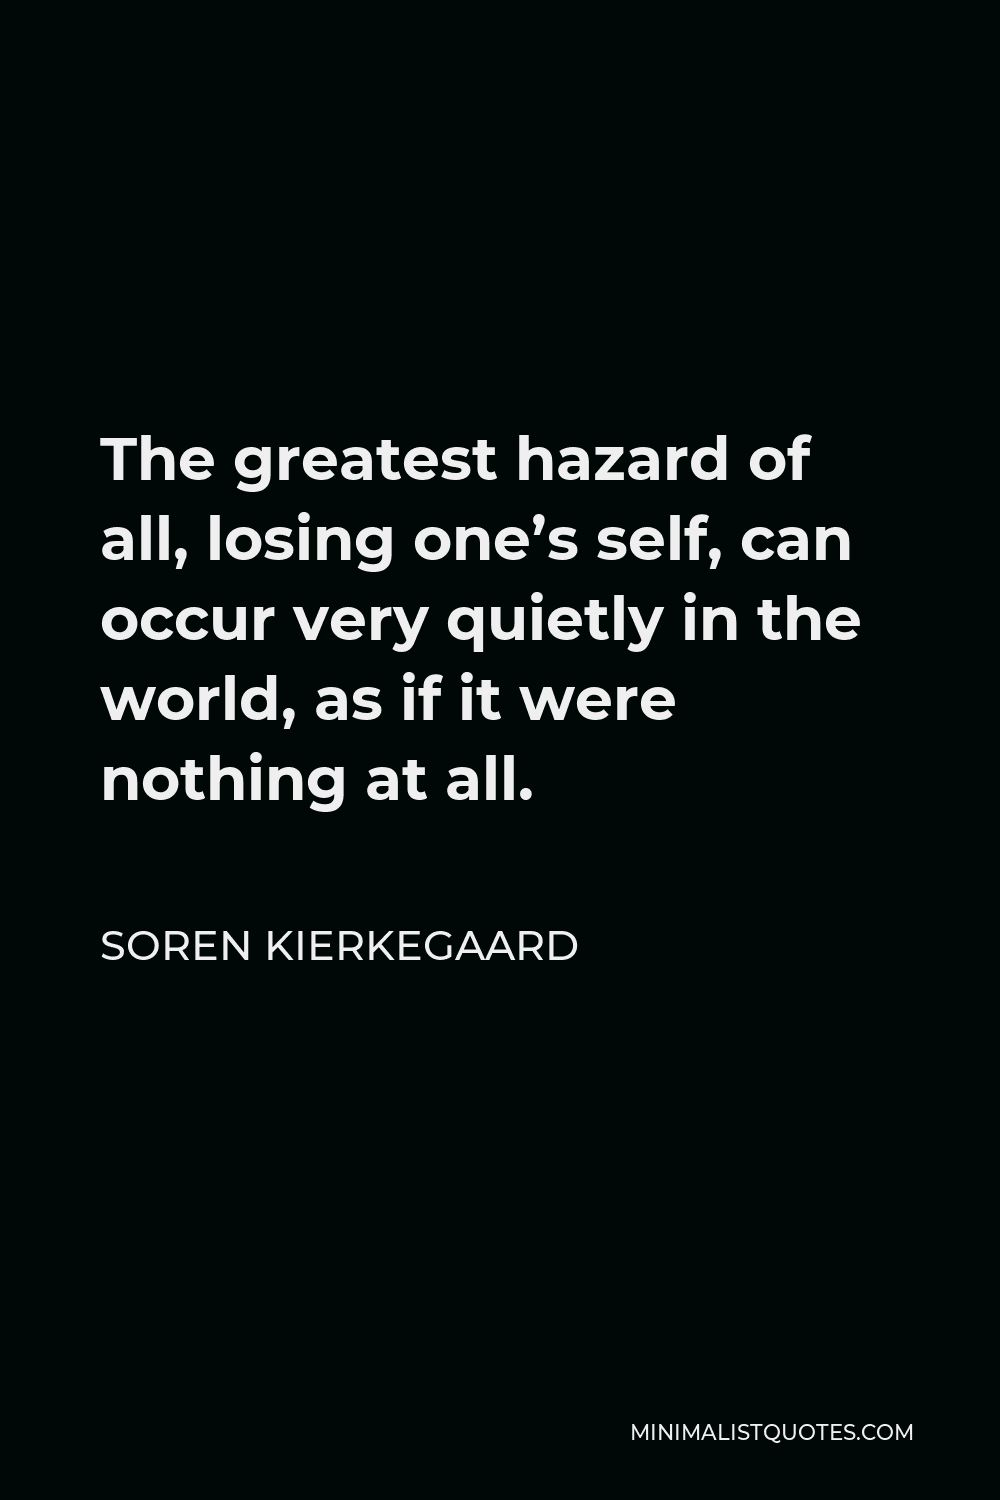 Soren Kierkegaard Quote - The greatest hazard of all, losing one's self, can occur very quietly in the world, as if it were nothing at all.